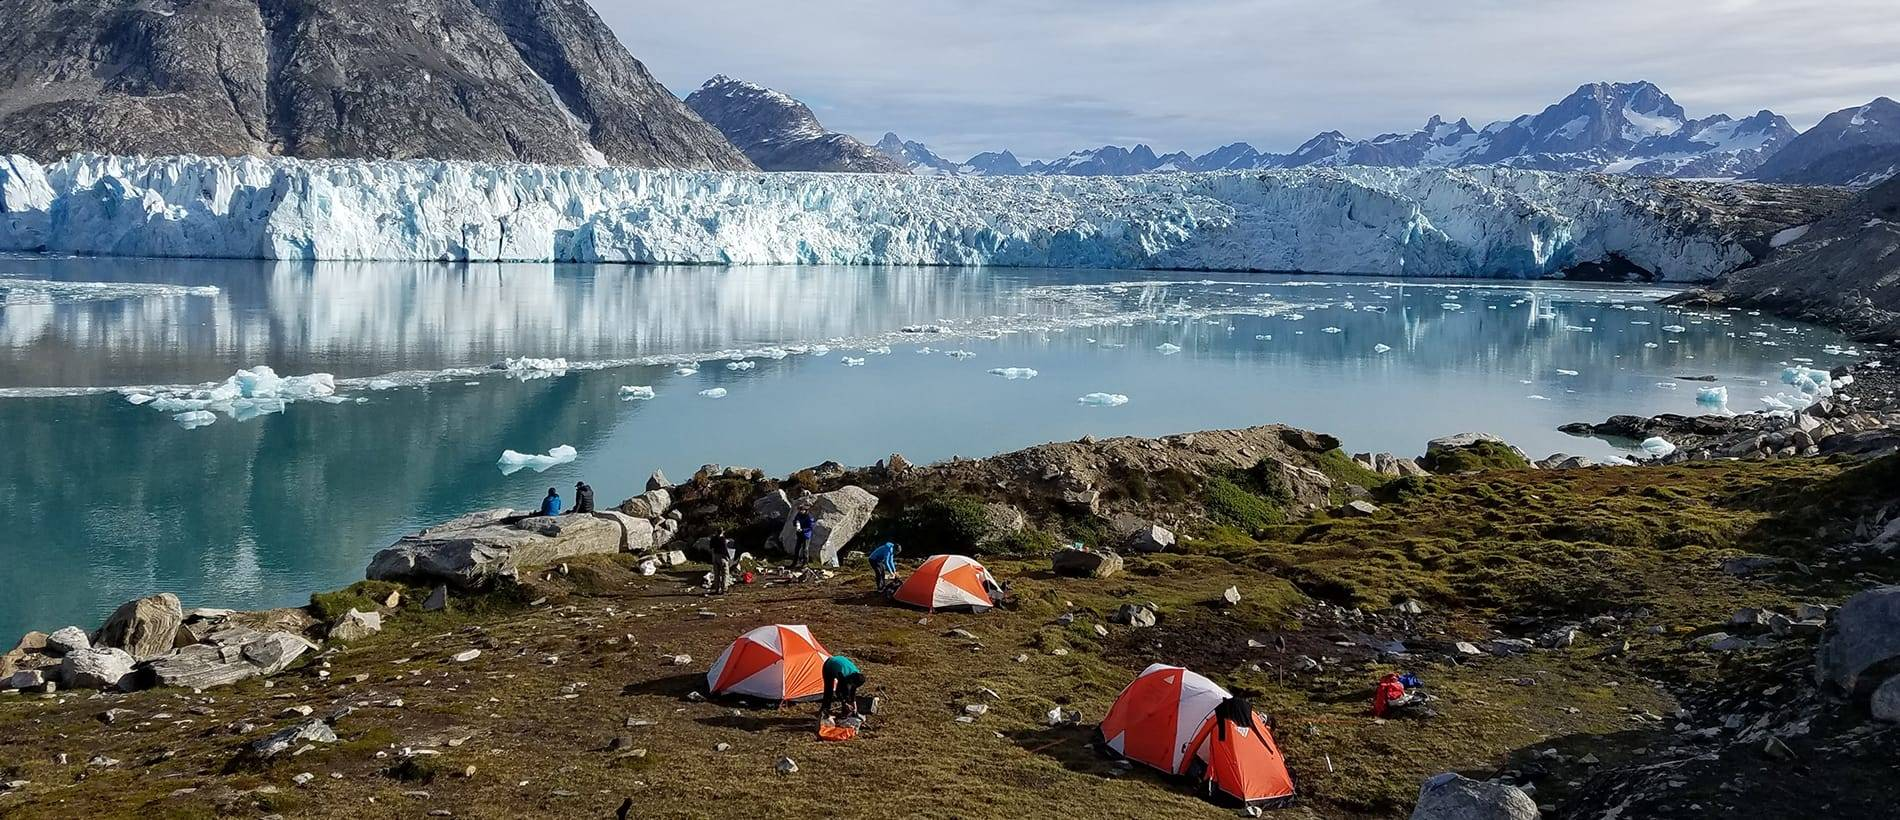 wild camping, adventure, expedition, cold, glacier, photography